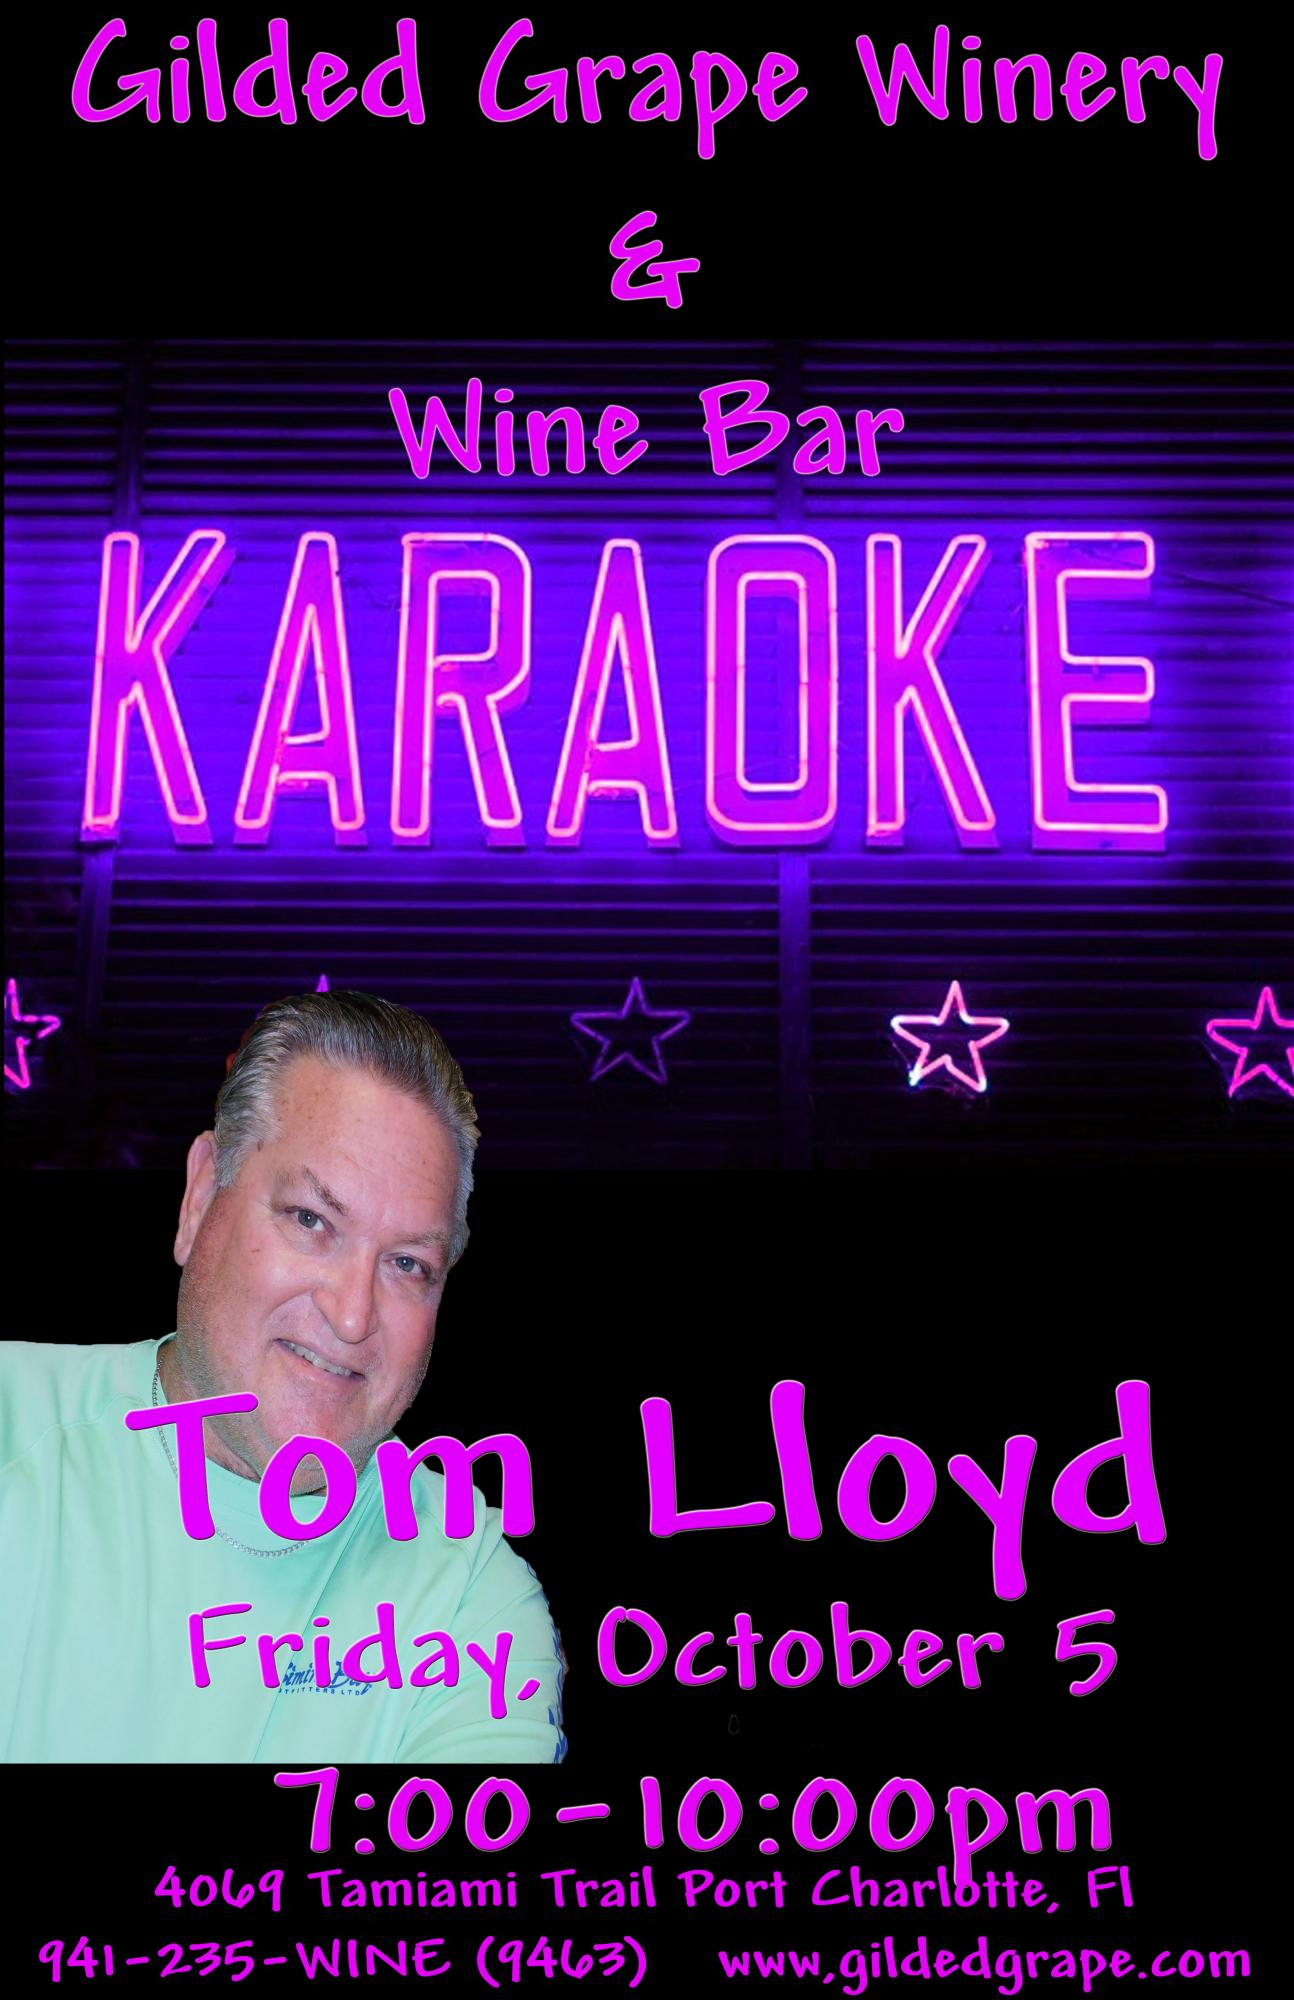 10-5_Tom_Lloyd_Karaoke76335.jpg